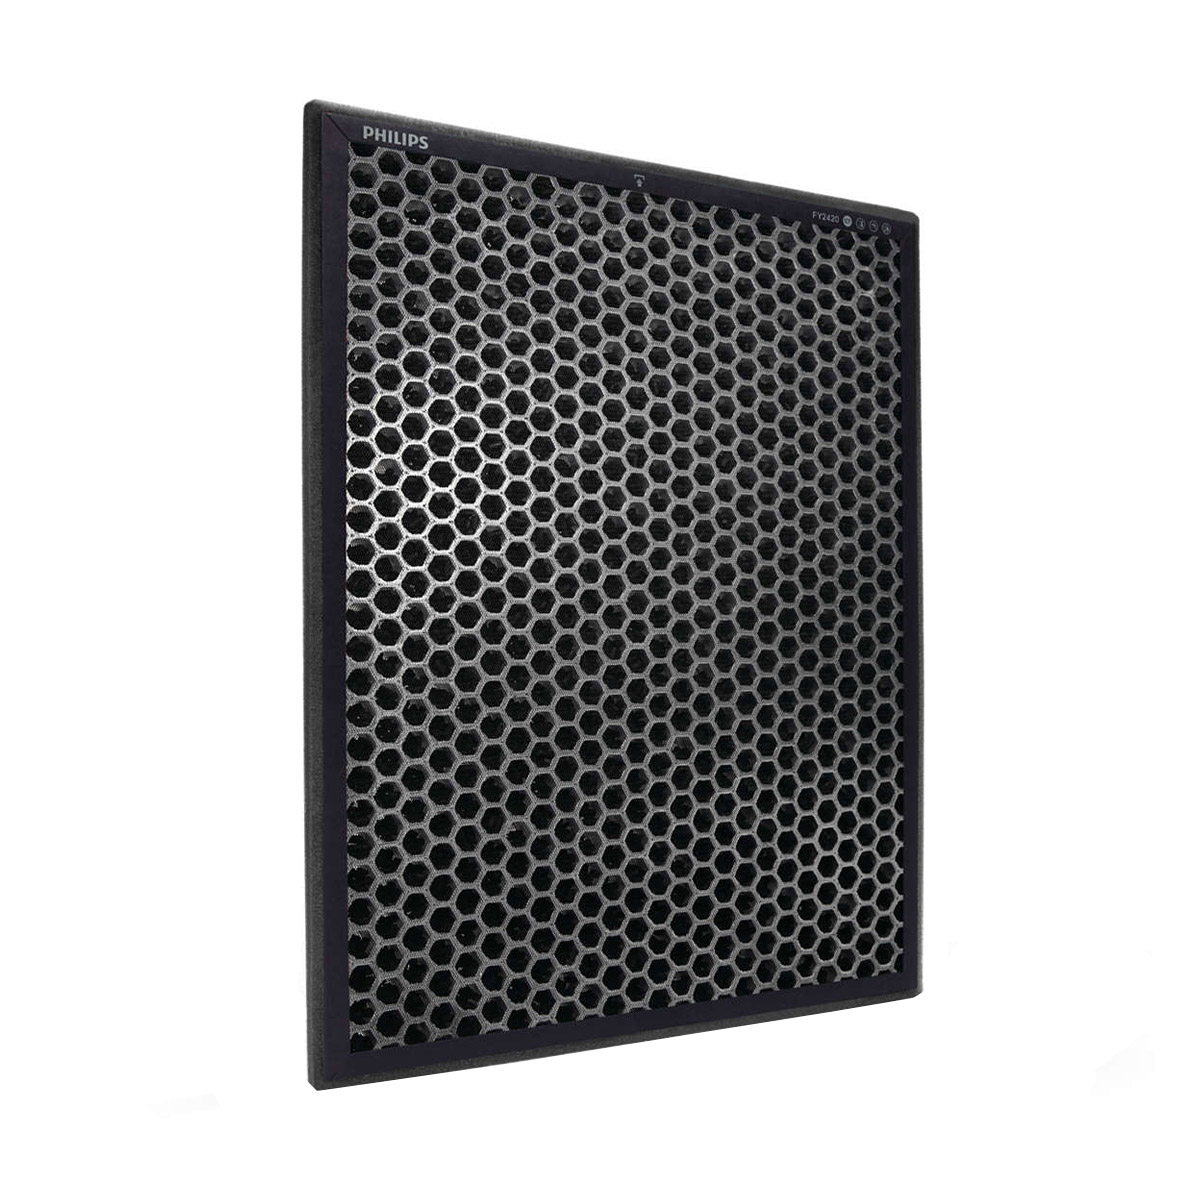 Philips NanoProtect Active Carbon Series 1000 Replacement Filter